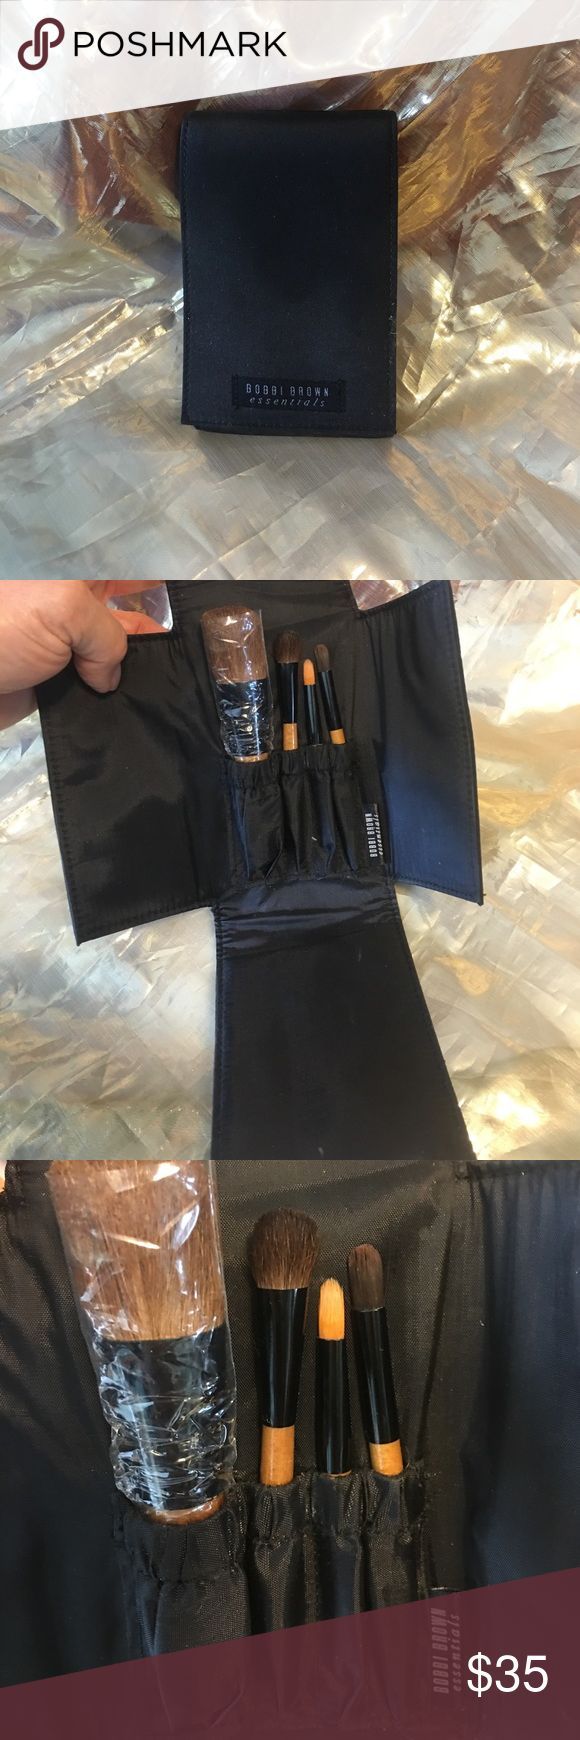 Bobbi Brown brush set Cool brush set with 4 brushes vintage Bobbi Bobbi Brown Makeup Brushes & Tools